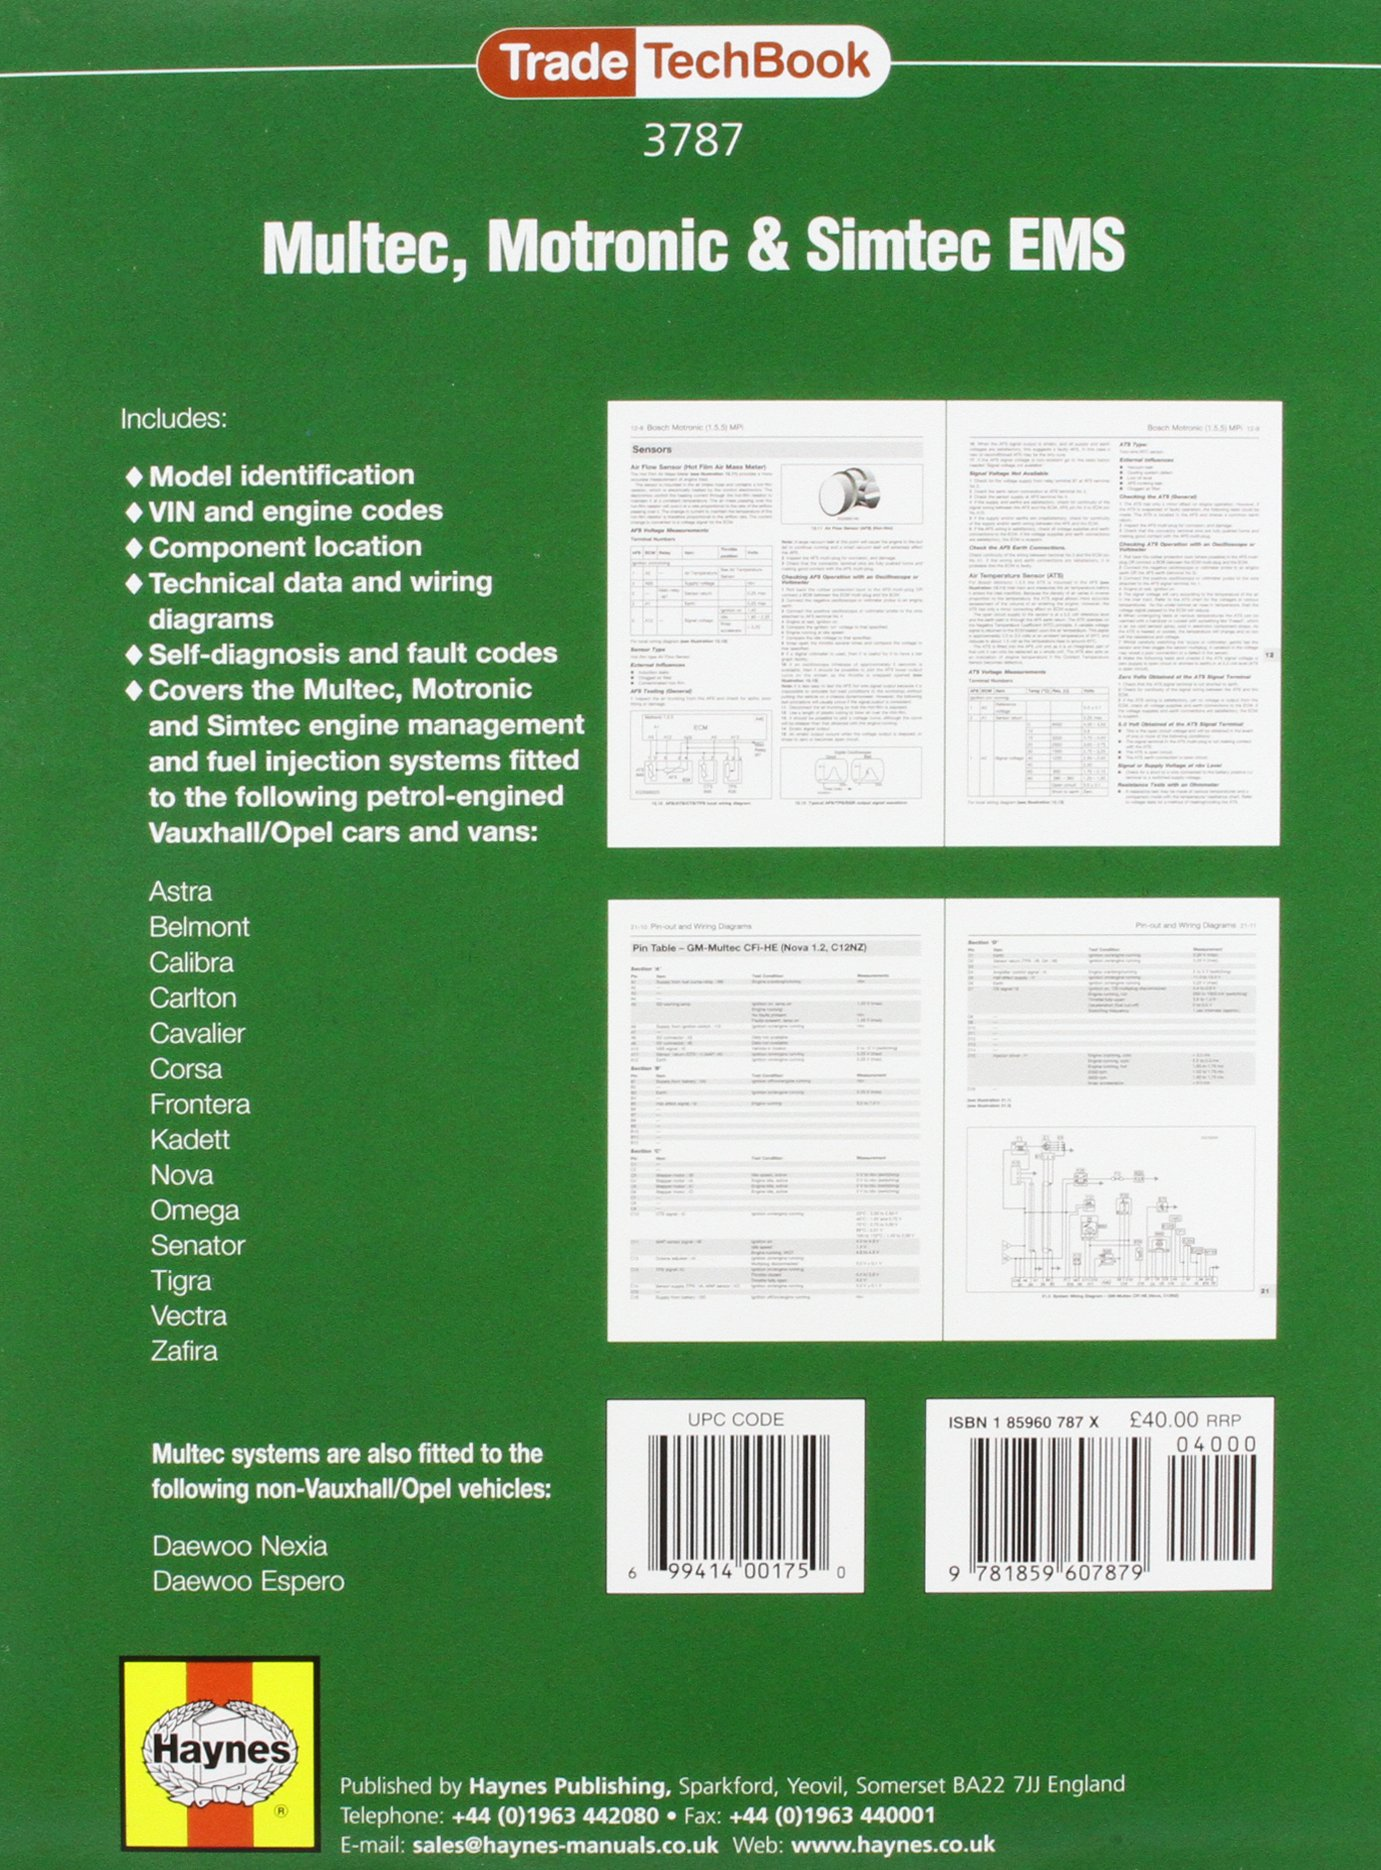 Multec Motronic And Simtec Engine Management Systems Trade Techbook Daewoo Espero Diagram Charles White Keith Ravenhill 9781859607879 Books